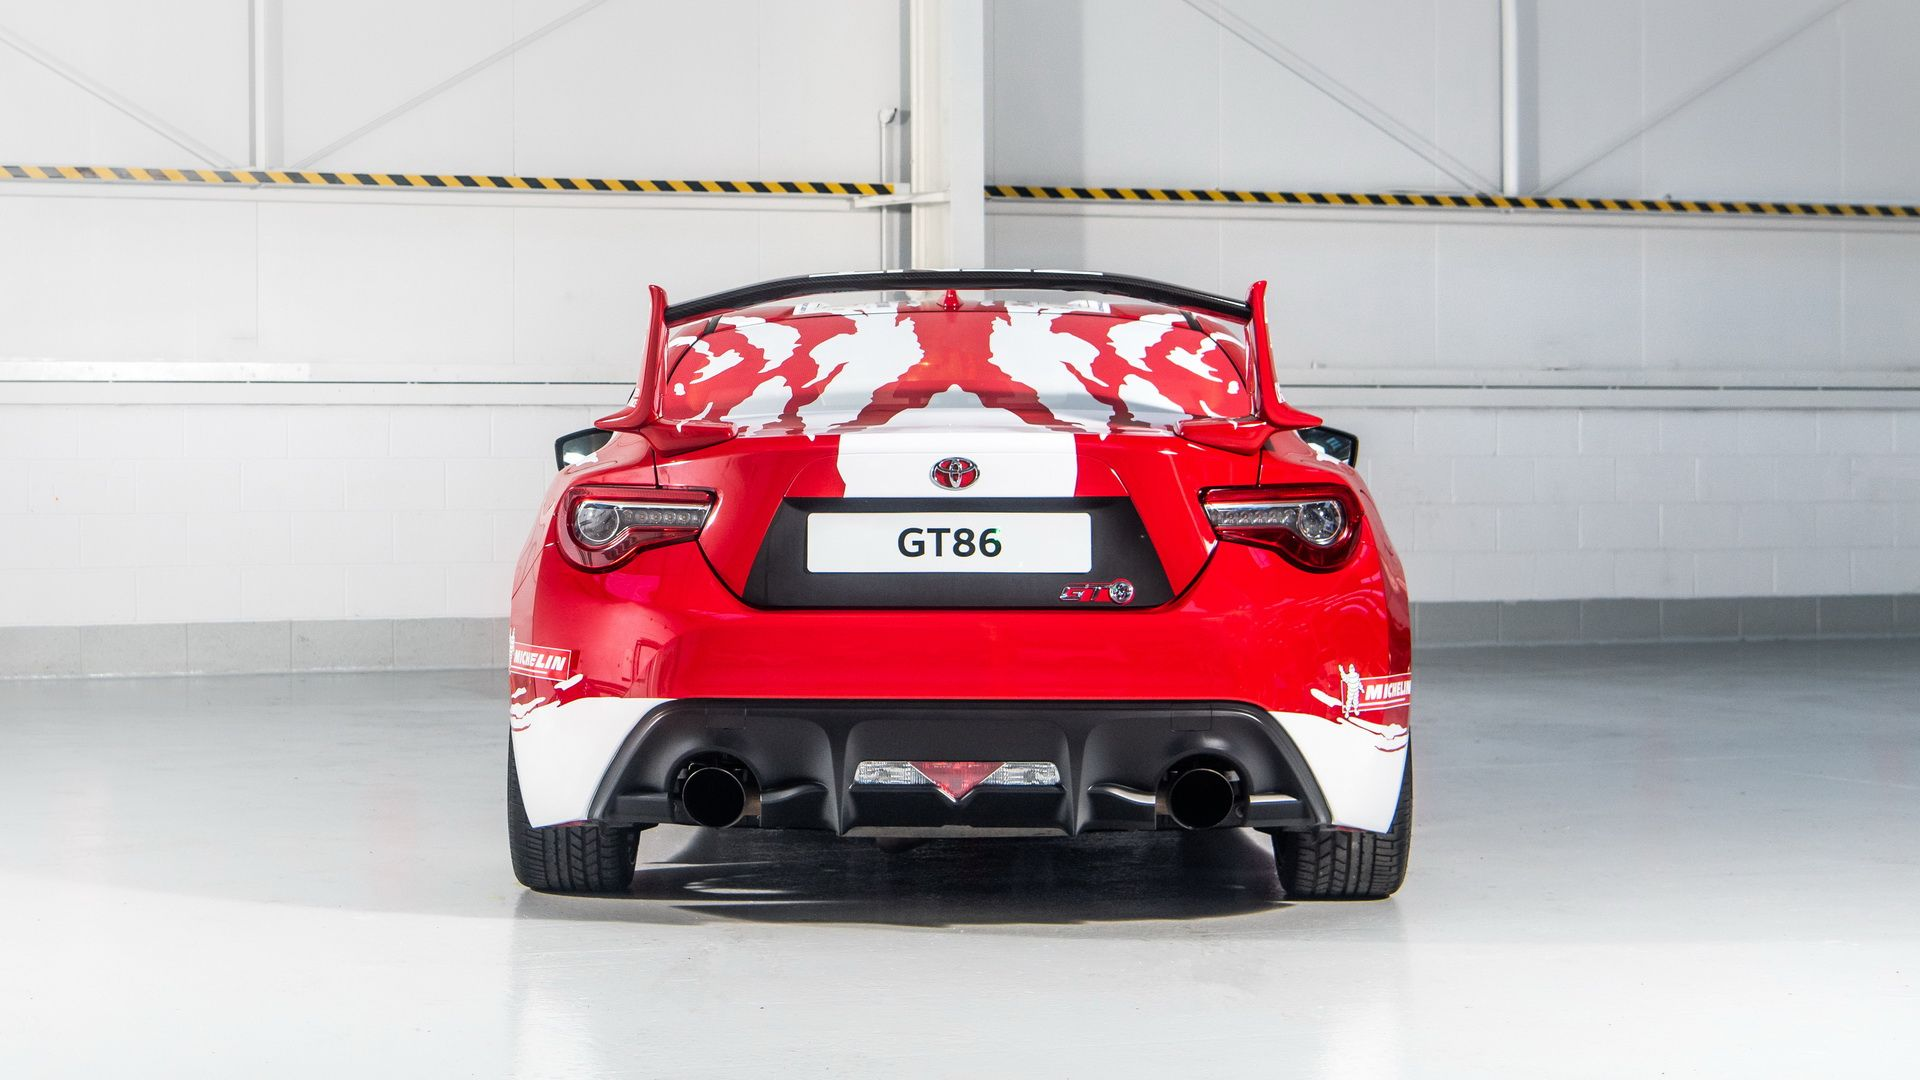 toyota-gt86-heritage-livery-24-hours-of-le-mans-12